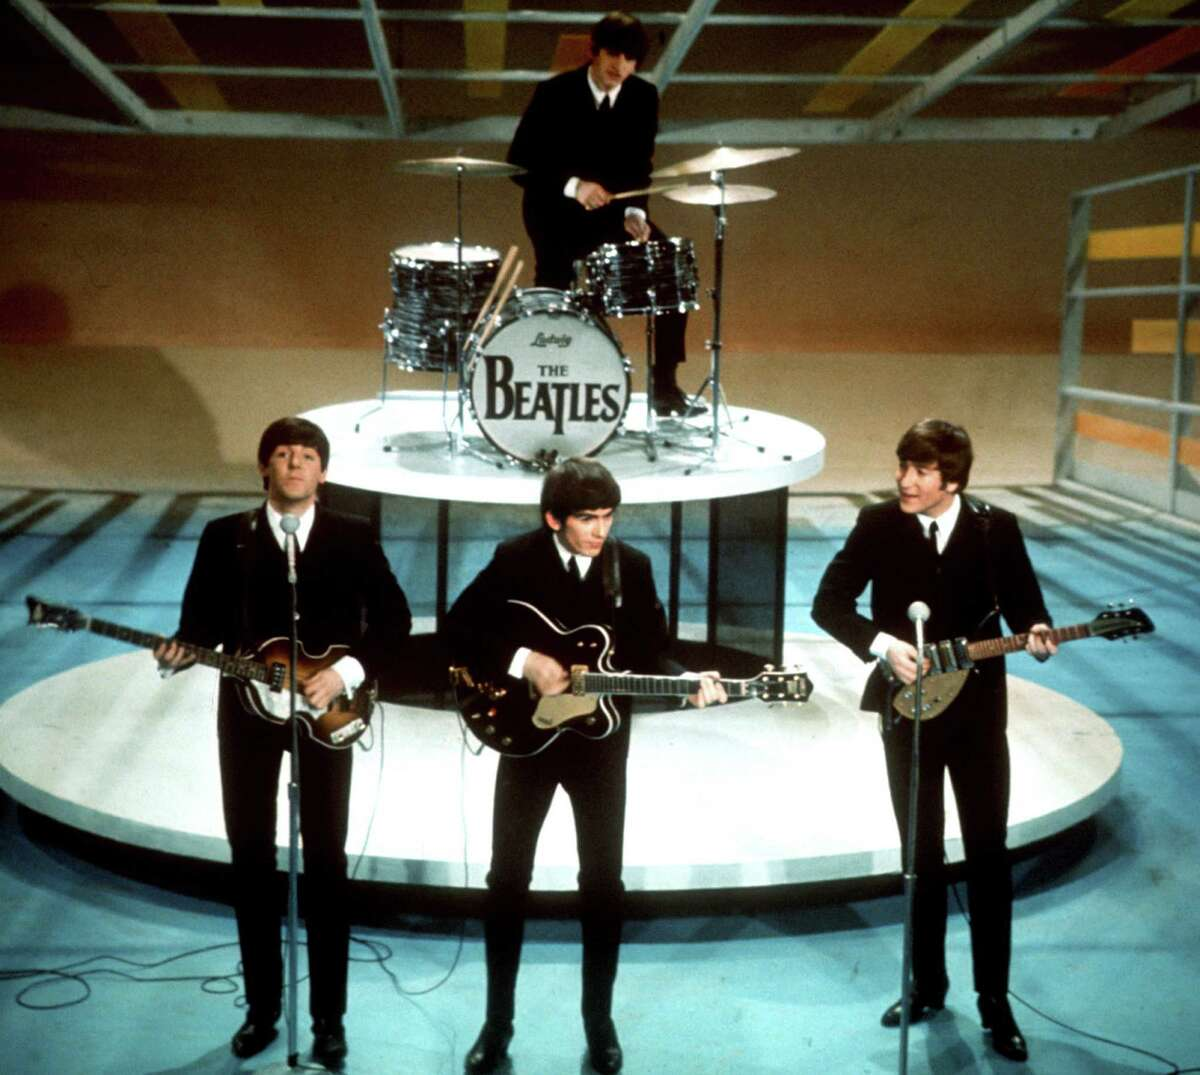 FILE - In this Feb. 9, 1964 file photo, The Beatles perform on the CBS